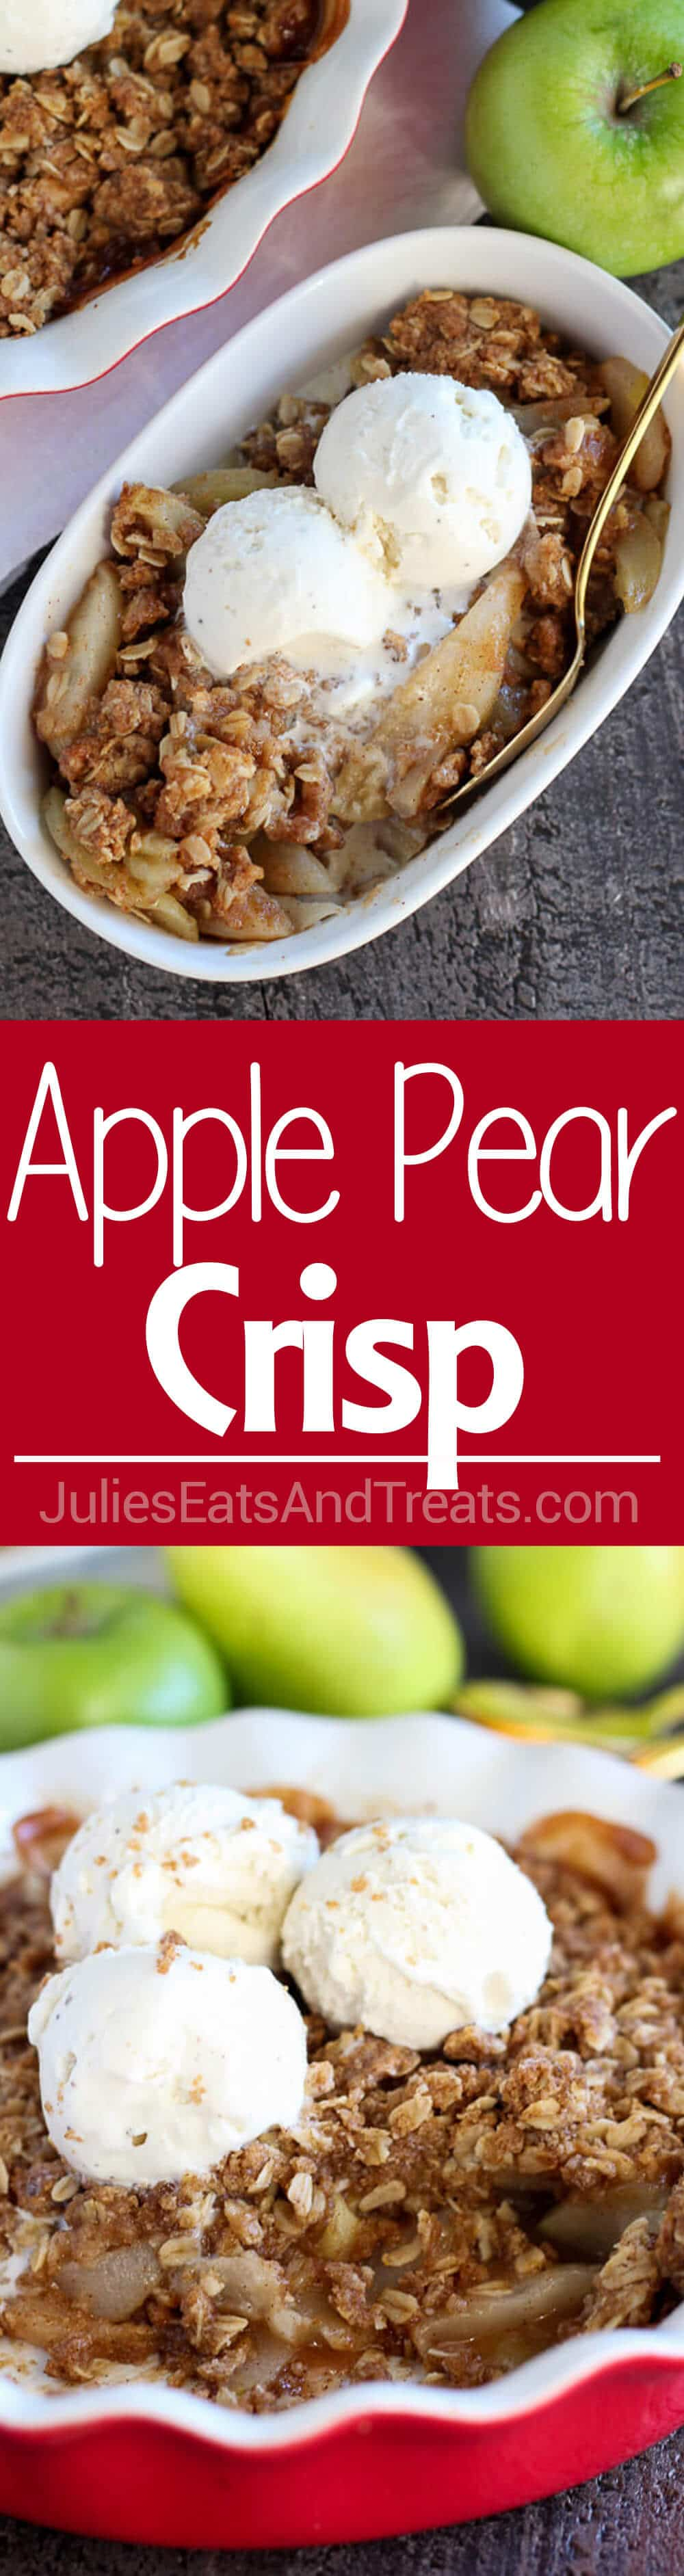 Apple Pear Crisp ~Tender apples and pears baked with a brown sugar oat topping. Serve warm for the perfect fall or winter dessert!